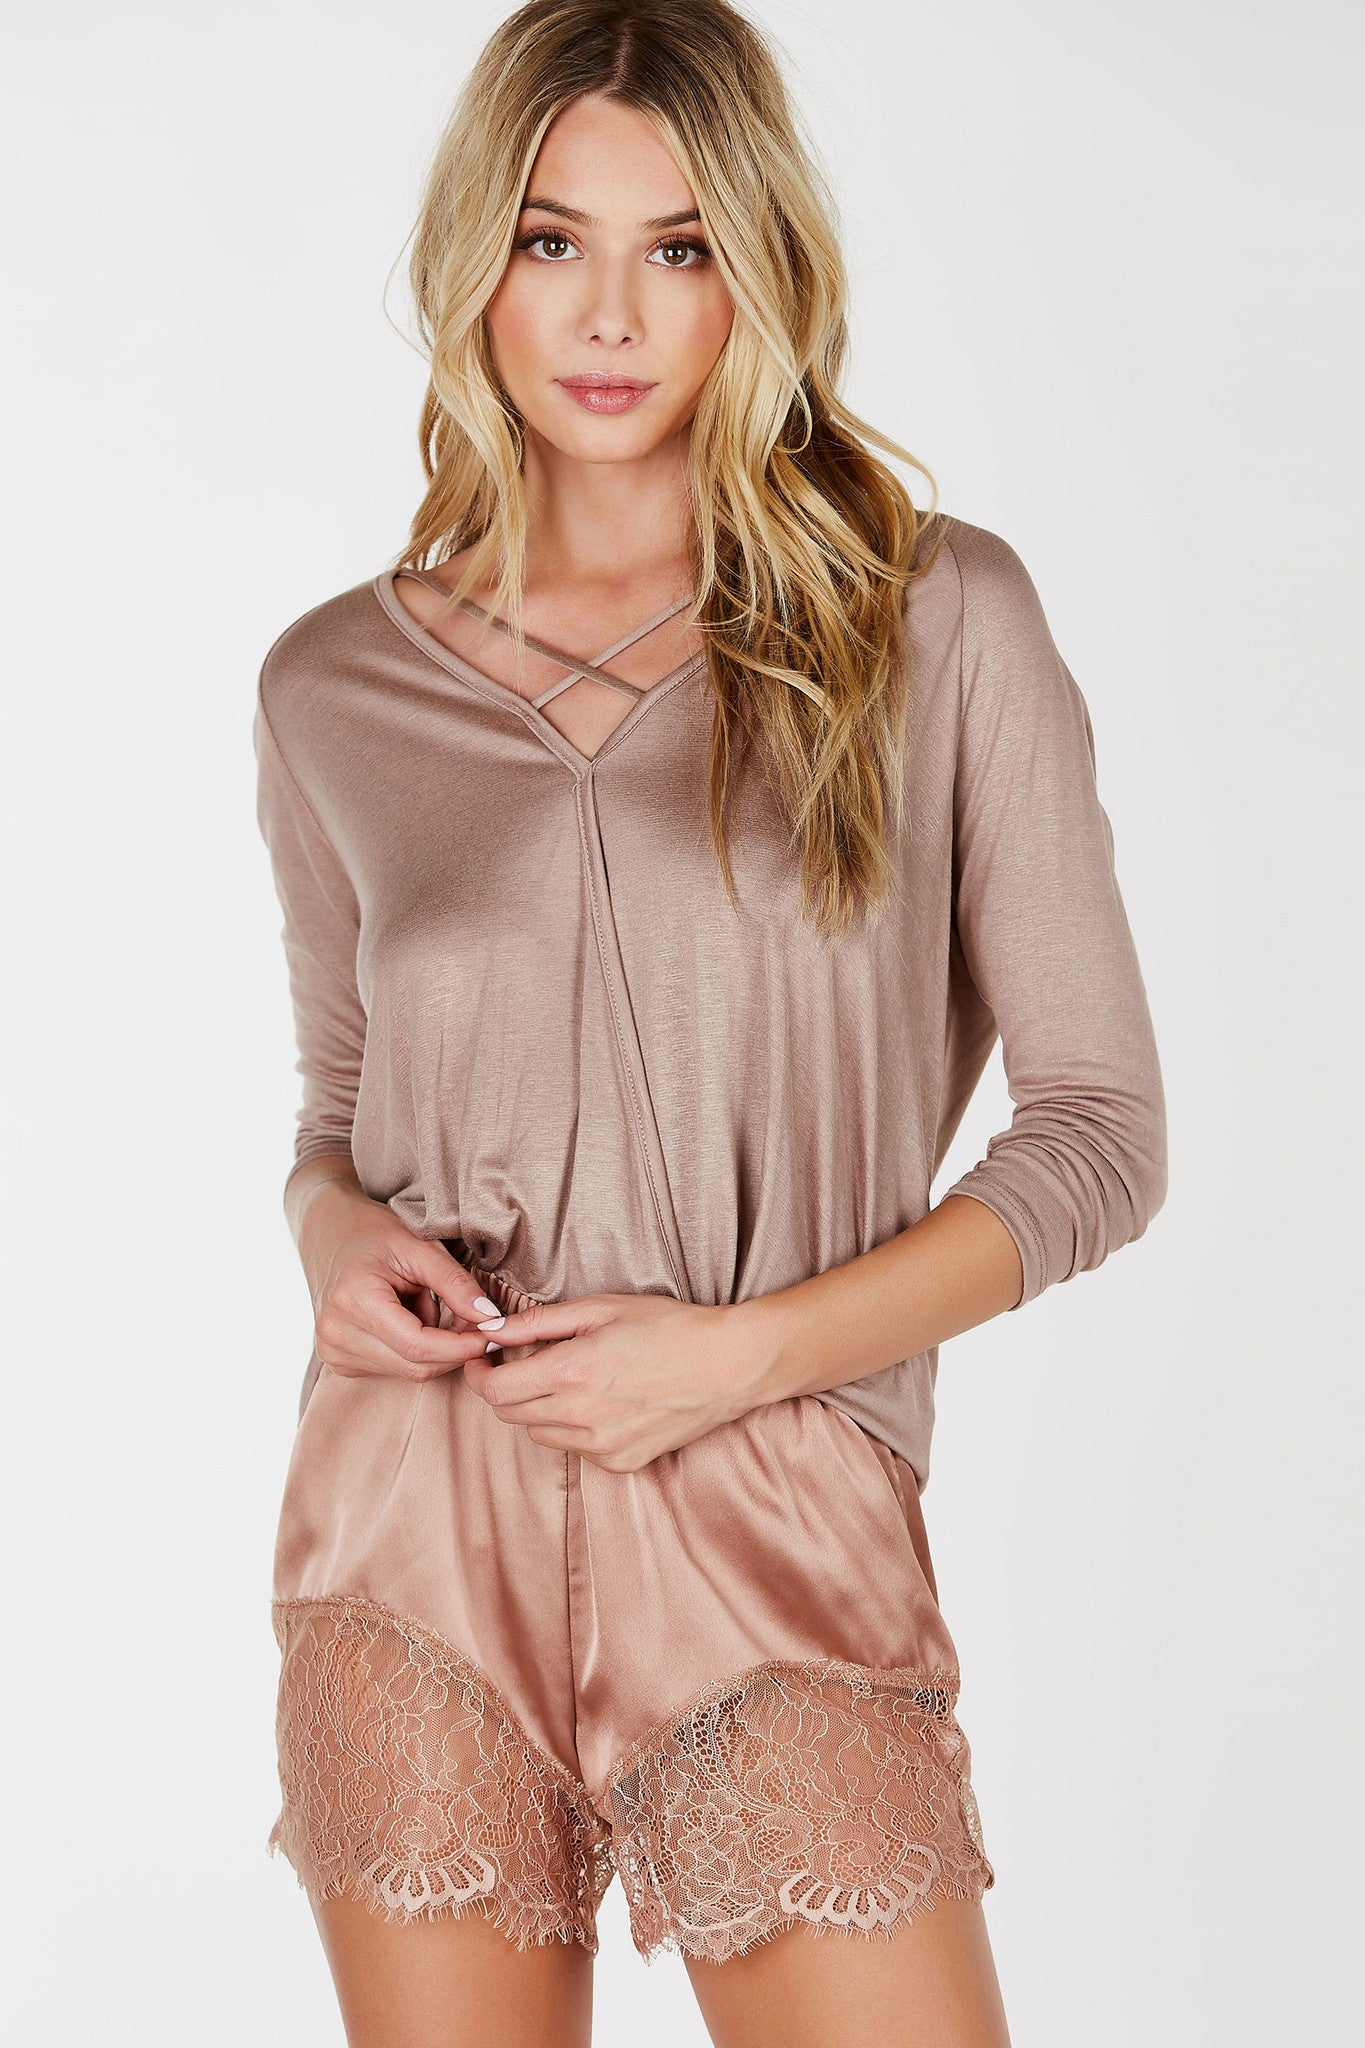 Simple but chic. This soft long sleeve top is definitely a boost from your regular everyday basics! Deep V-neckline with cross over strap detailing with a stylish draped finish. Style with distressed boyfriend jeans and booties!